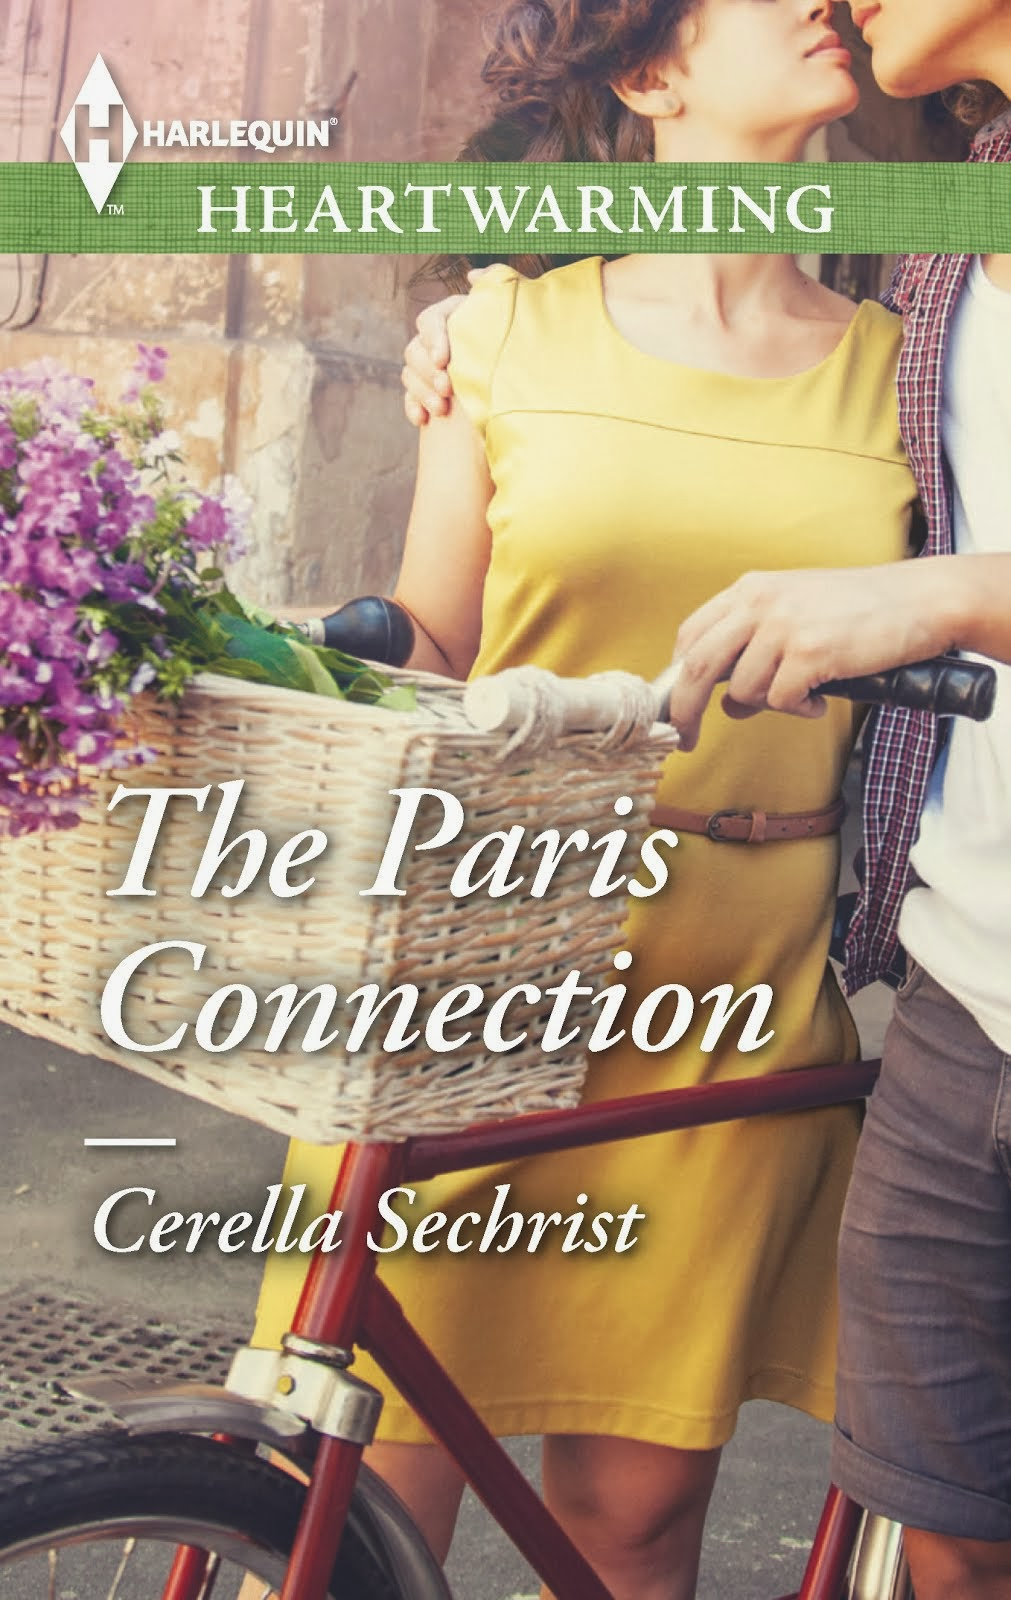 The Paris Connection by Cerella Sechrist